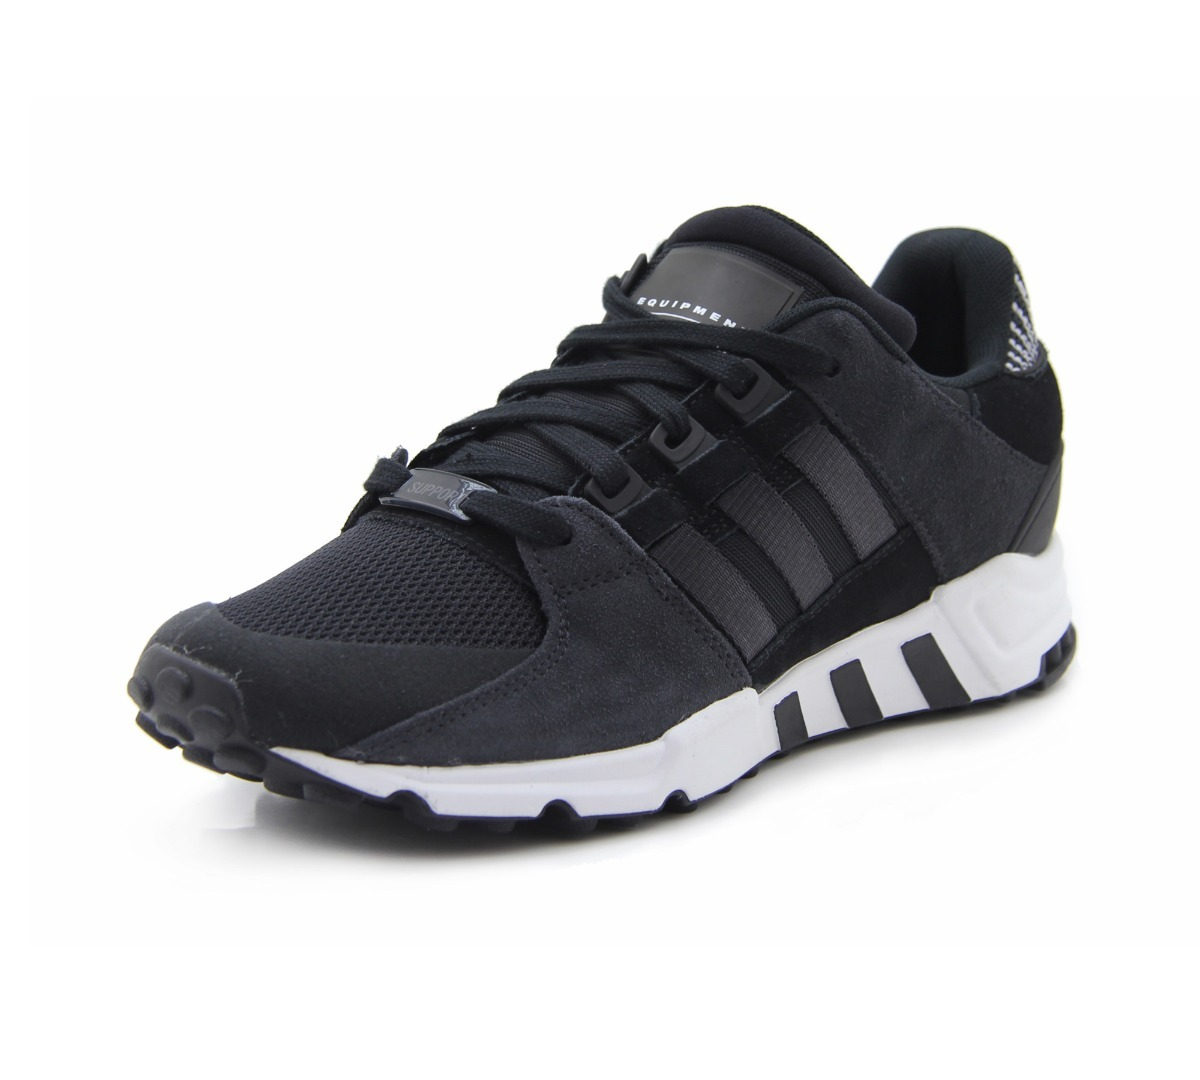 buy popular 02074 4dee0 tenis adidas torsion eqt support rf by9623 retro originales. Cargando zoom.